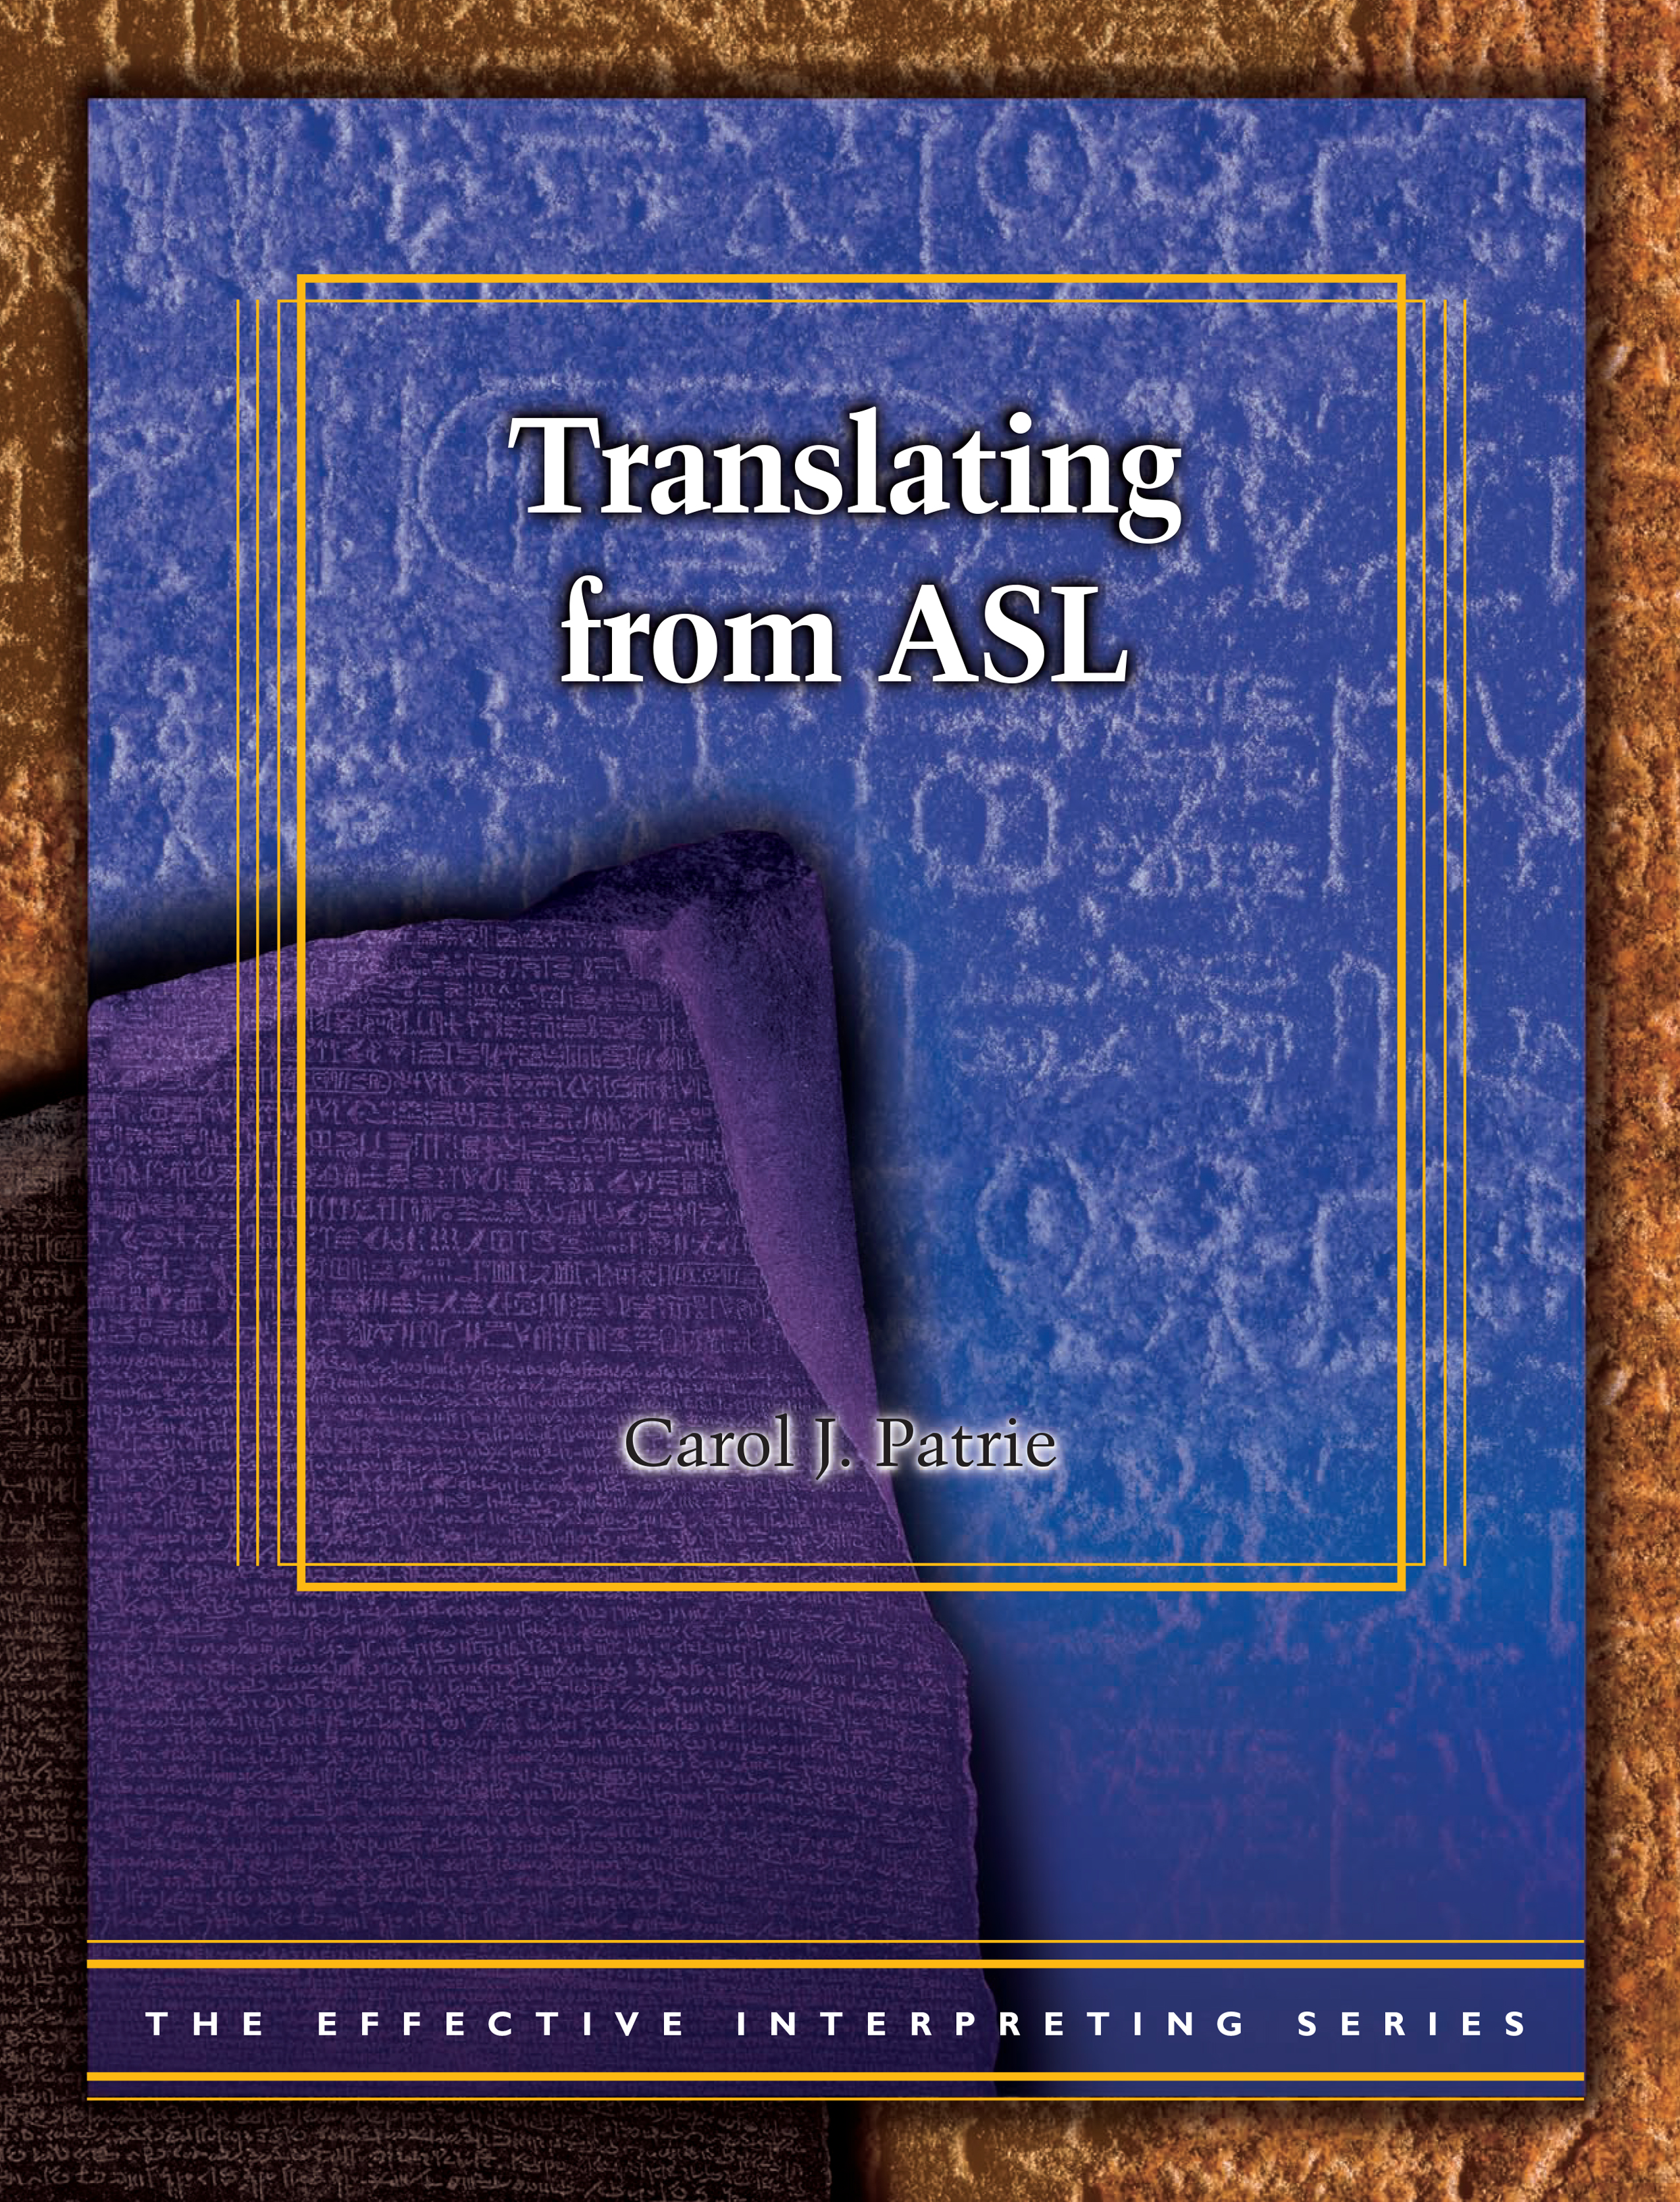 Translating from ASL